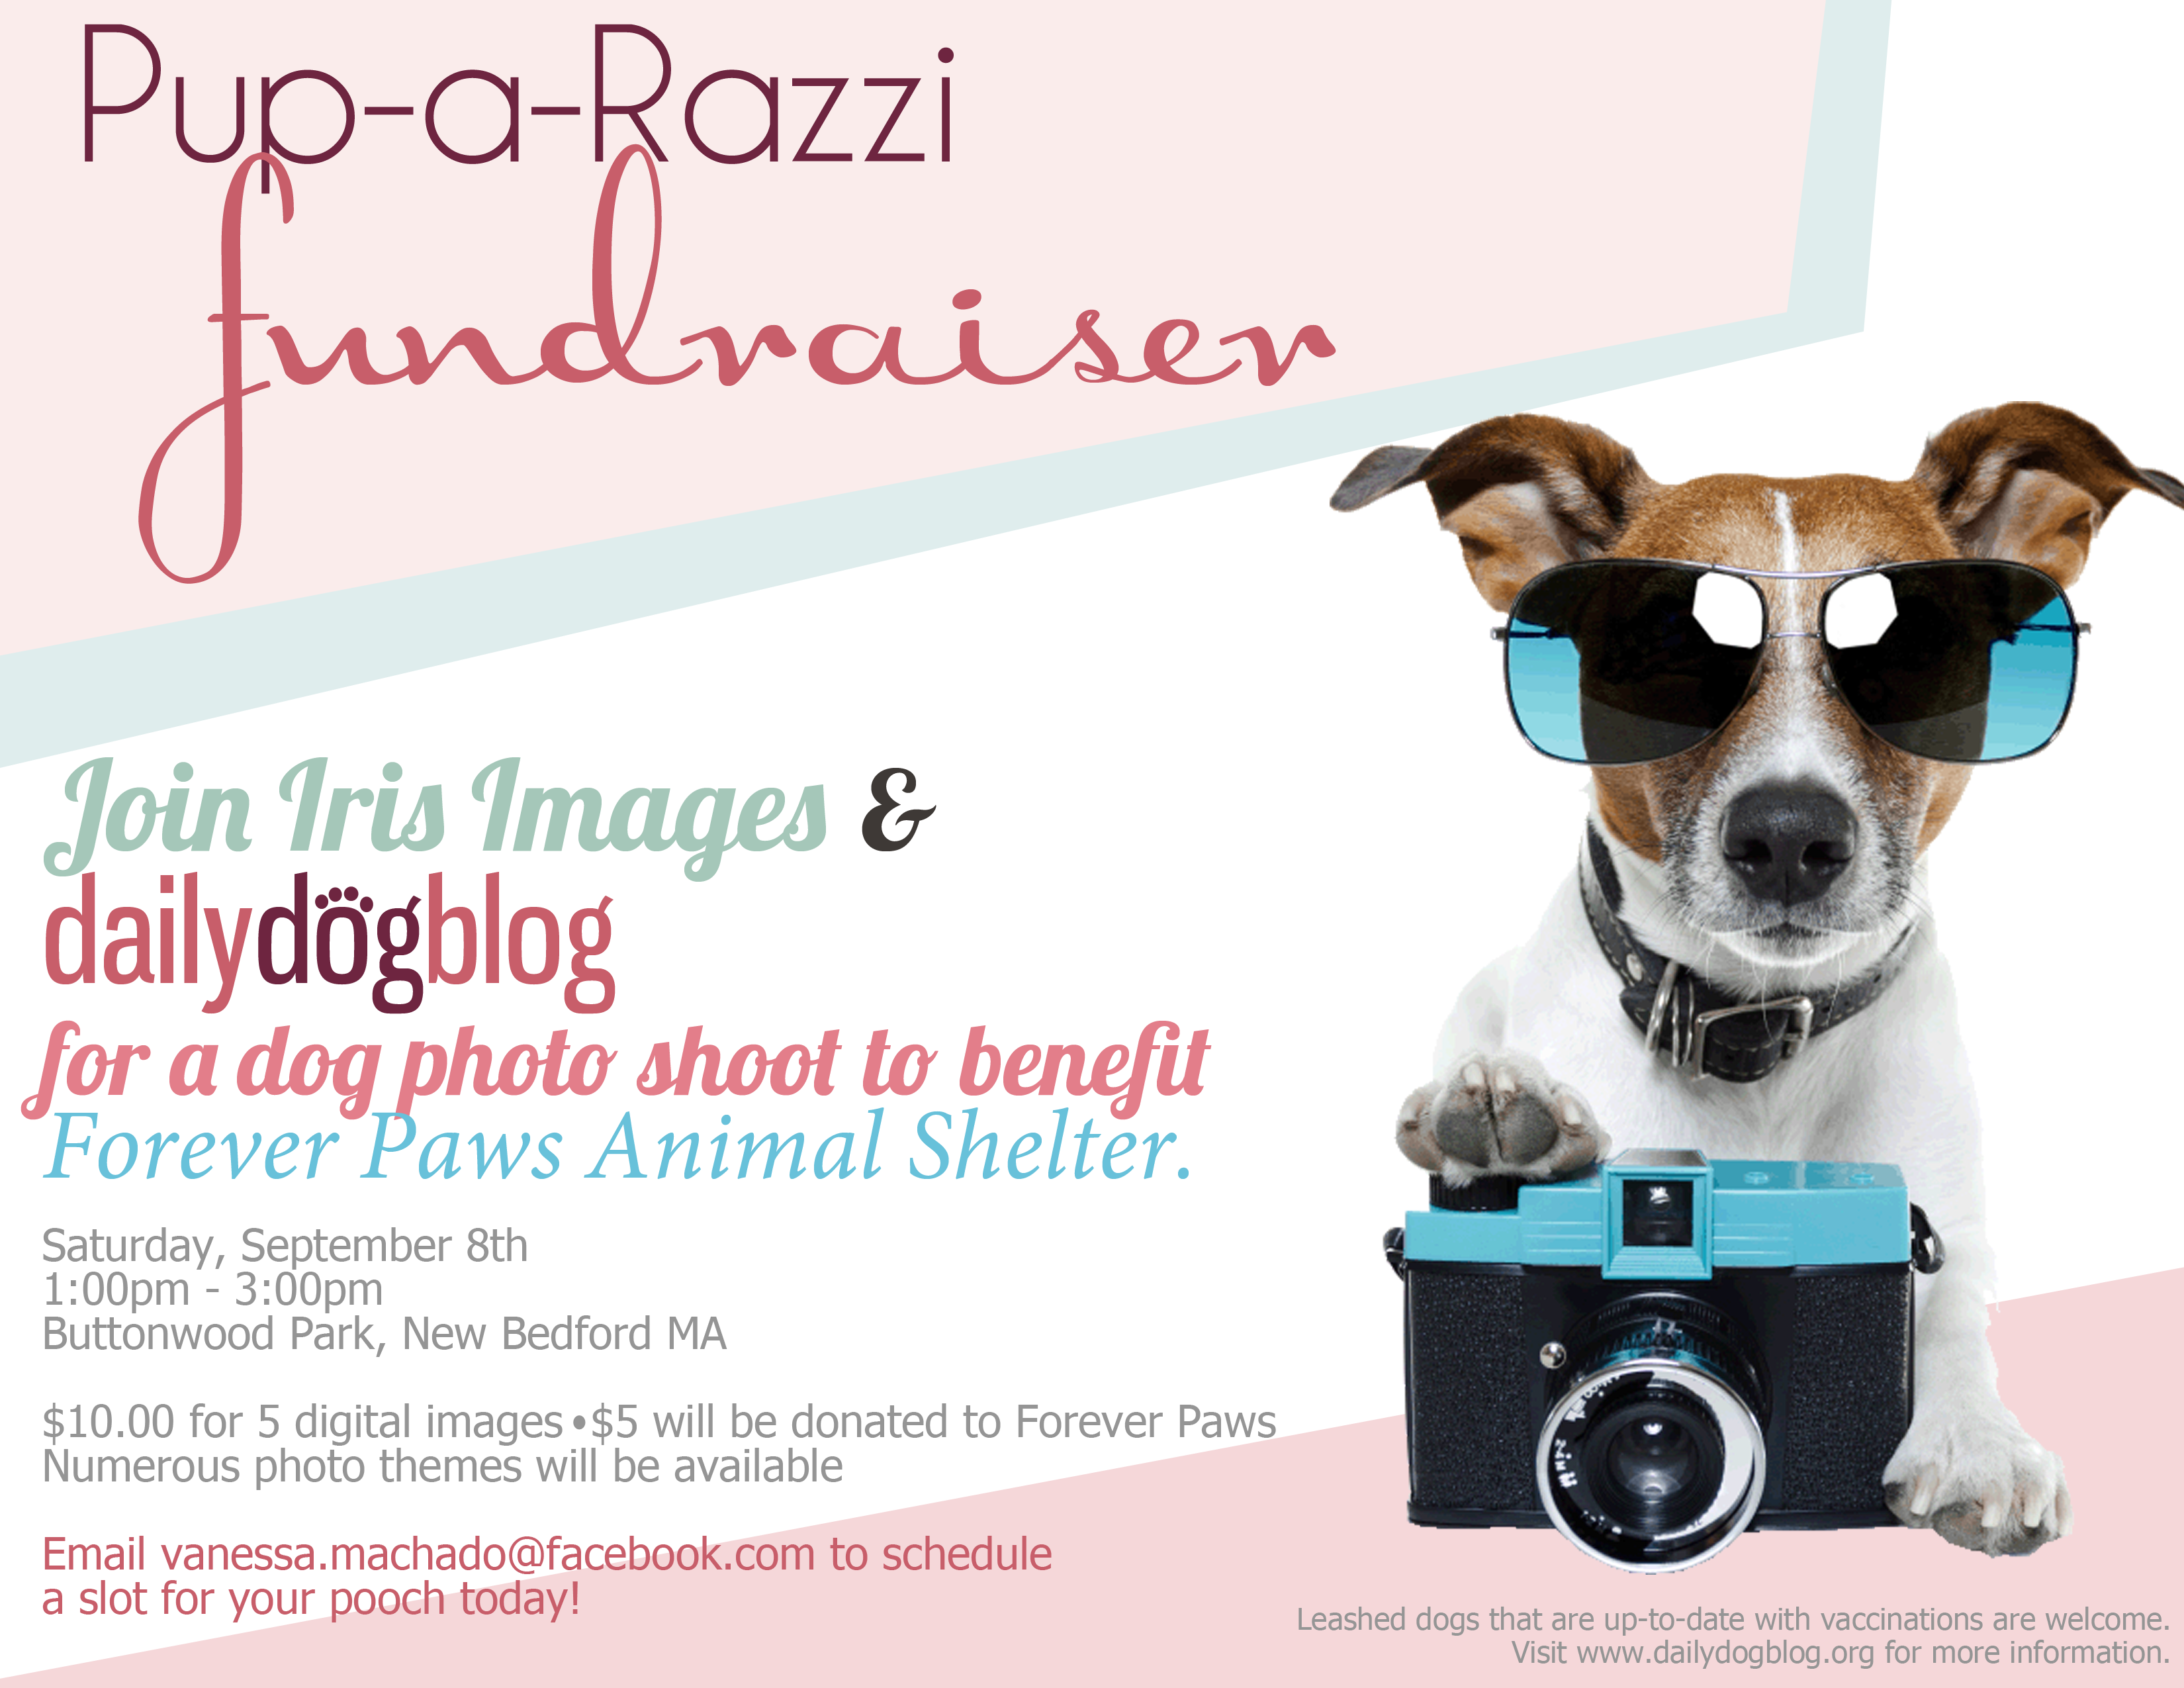 Dailydogblog And Iris Images To Host Pup A Razzi Fundraiser To Benefit Forever Paws Animal Shelter Daily Dog Blog Animal Rescue Fundraising Animal Shelter Fundraiser Animal Shelter